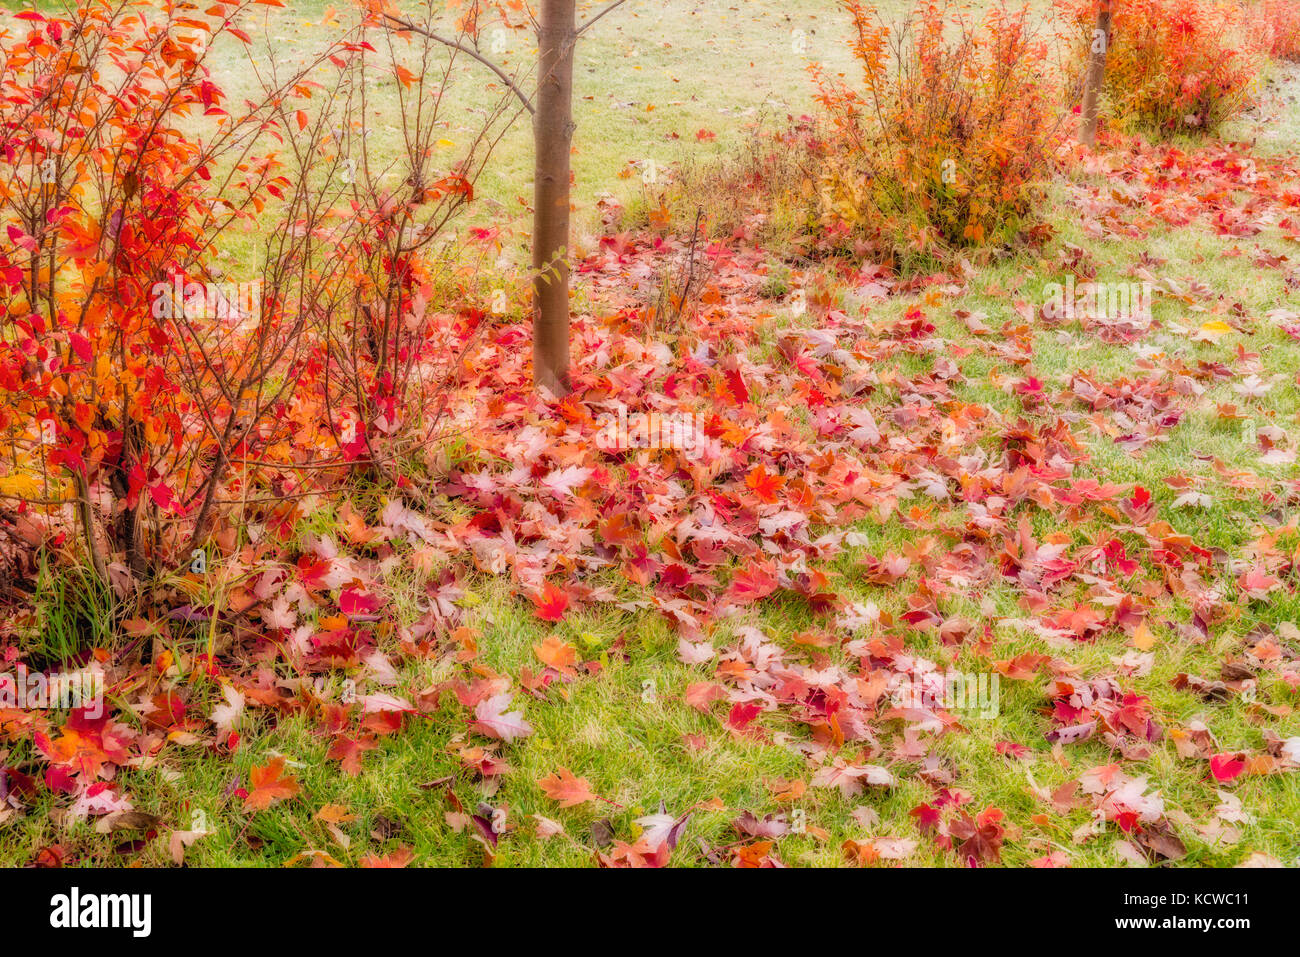 Shrubs in autumn color, Winnipeg, Manitoba, Canada - Stock Image